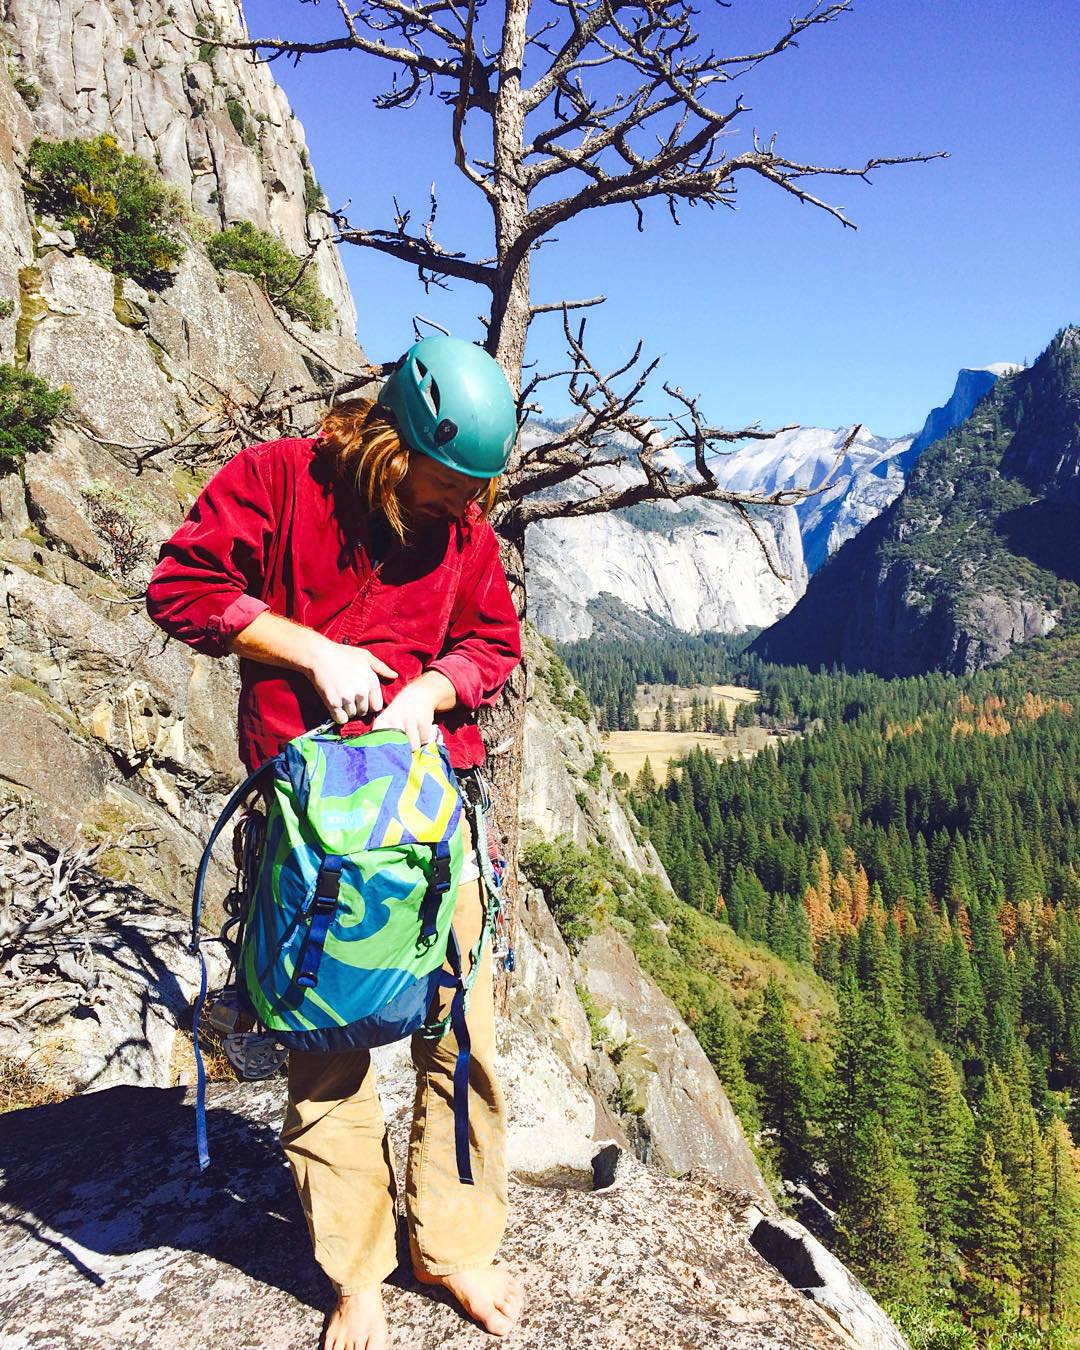 Our good friend and great climber @guillermomarun testing out the Discover Pack in Yosemite // where will you adventure with your Mafia pack? #fromsailstobags #madeforlife #goexplore